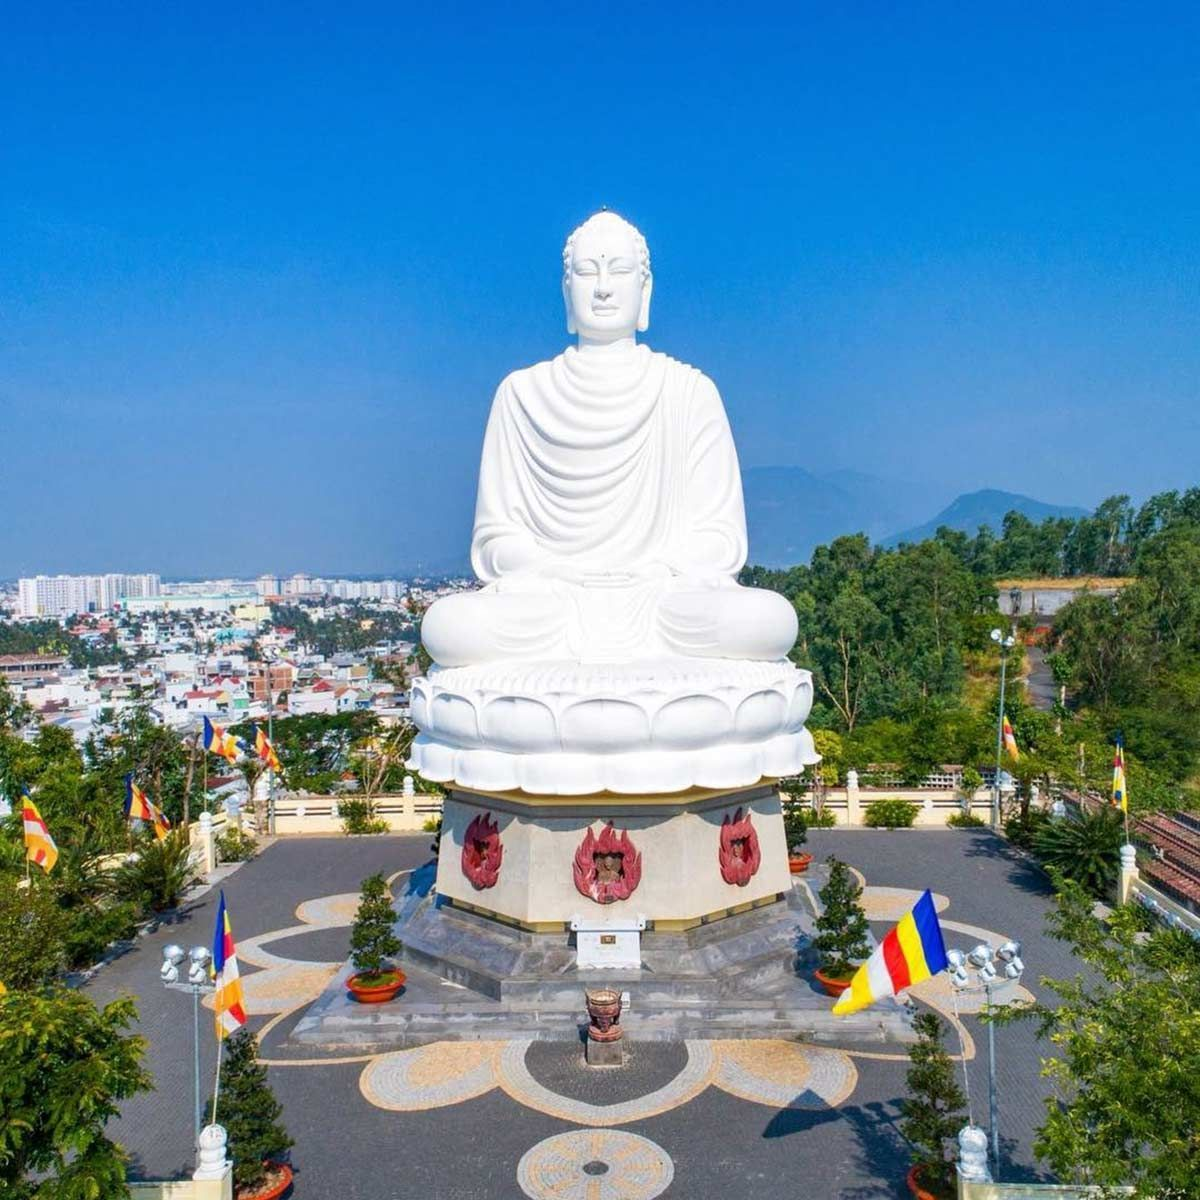 Long Son Pagoda with the largest outdoor Buddha statue in Vietnam